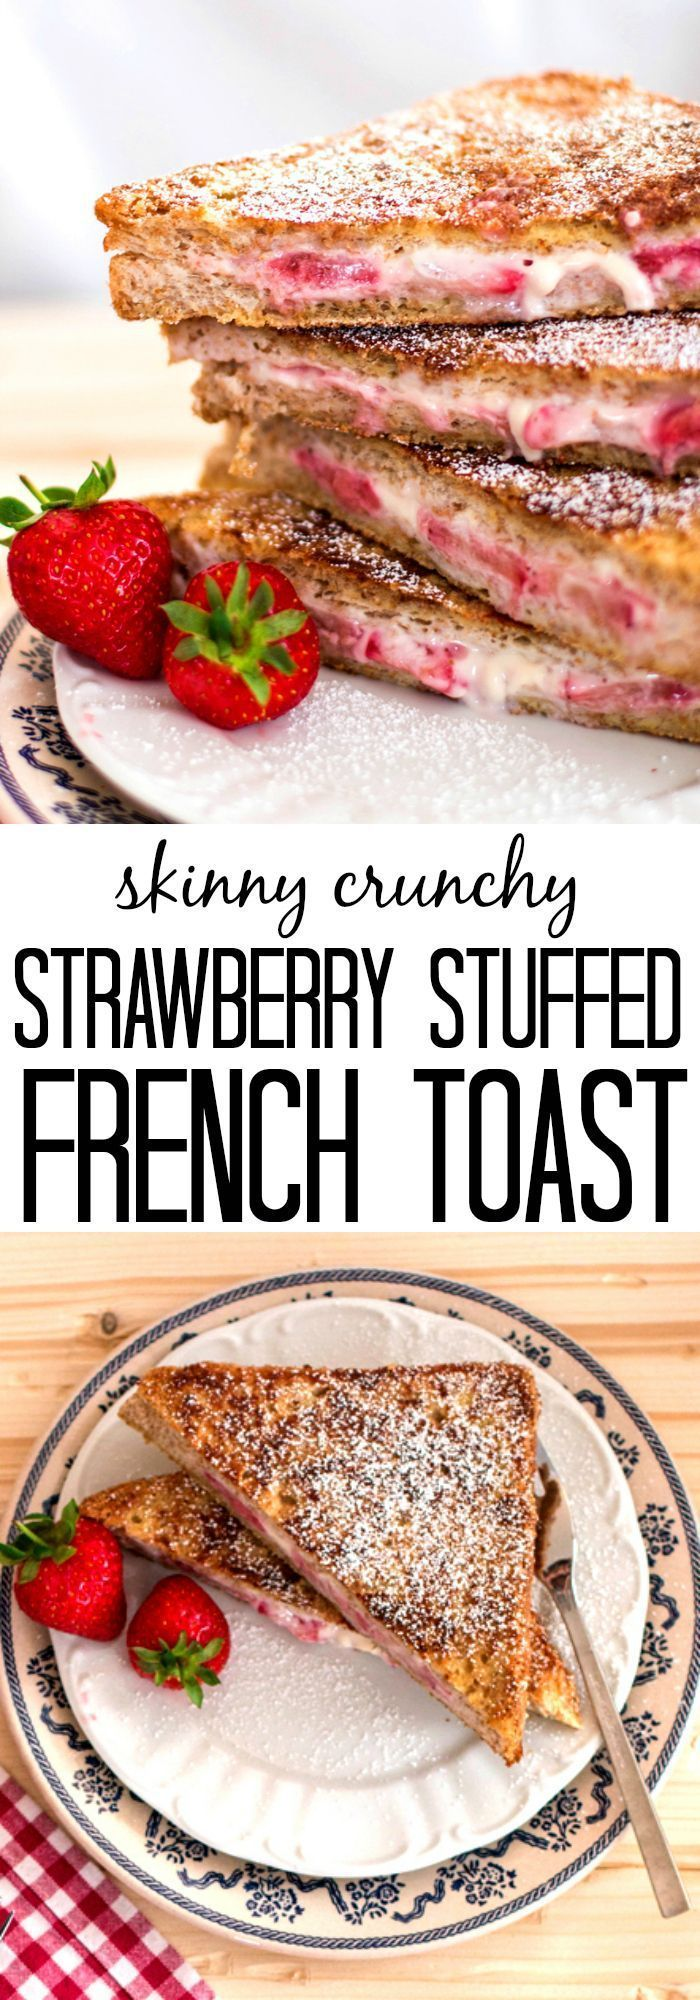 A better-for-you breakfast stuffed with strawberries and cream cheese, coated in a delicious crunchy cinnamon crust! (Stuffed Pancake Healthy)